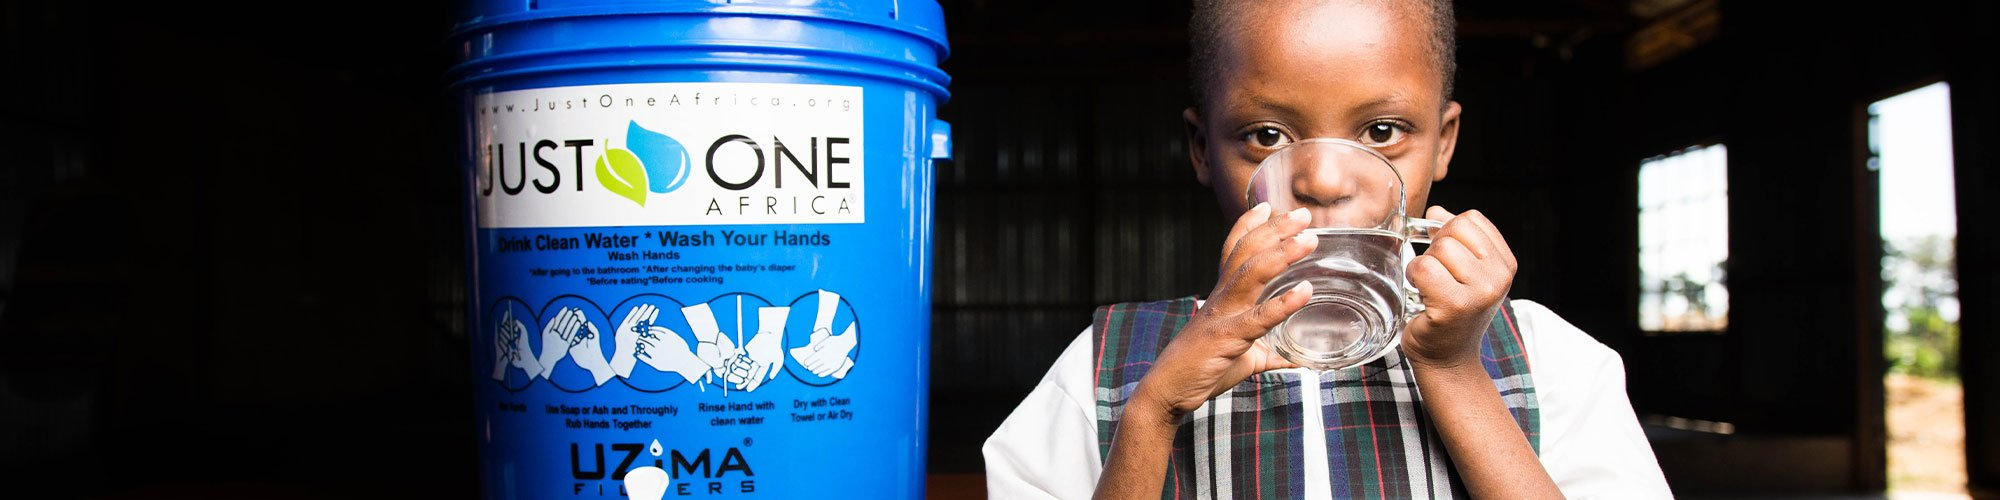 Just One Africa provides clean water and sustainable solutions